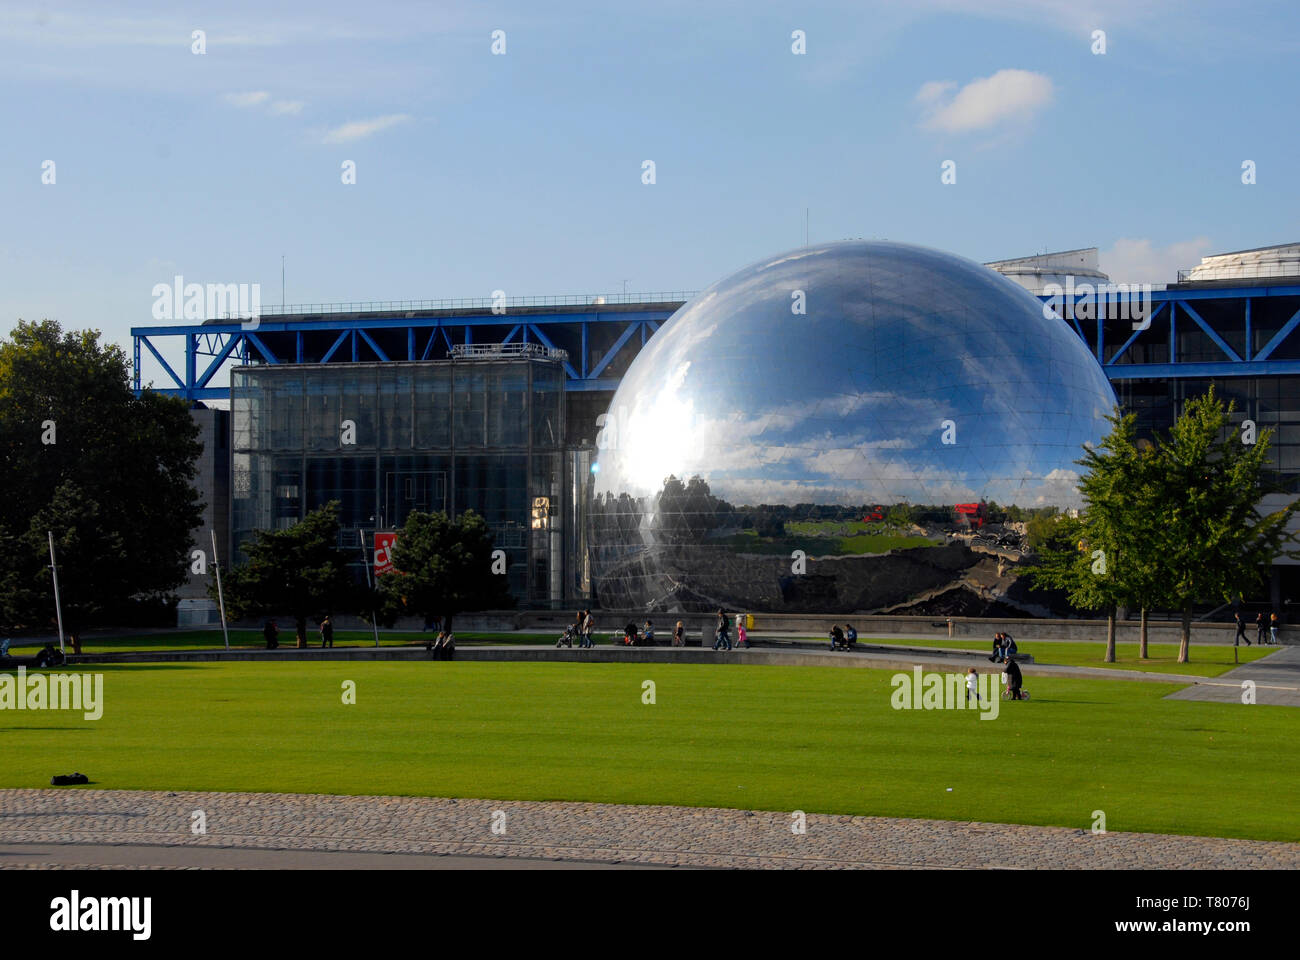 Large geodesic dome near open area, Paris, France - Stock Image